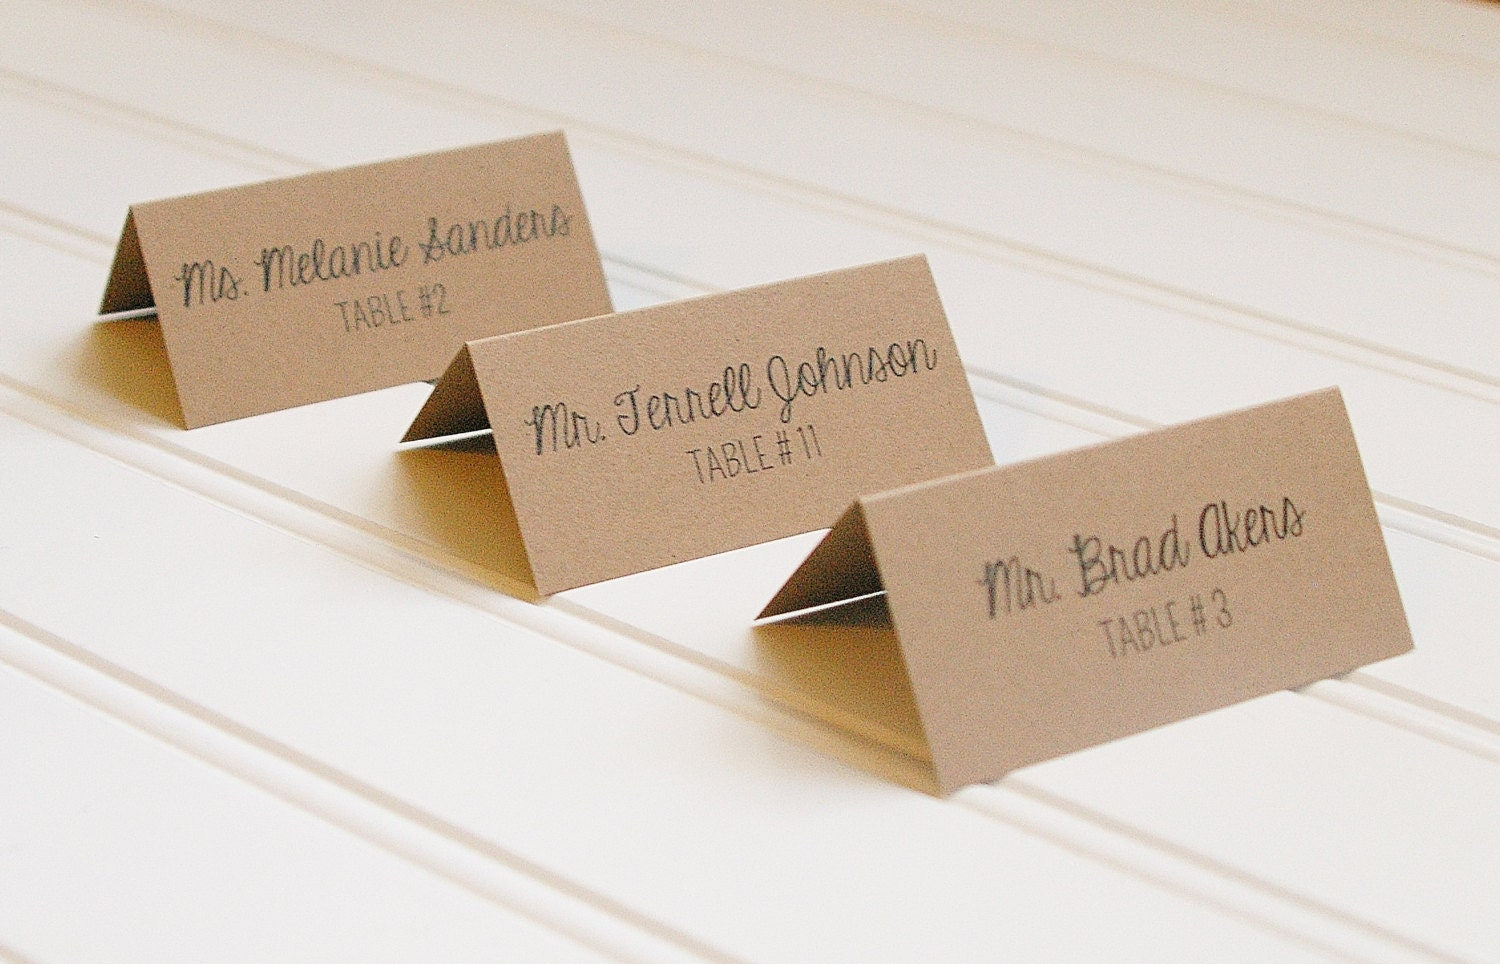 kraft paper place cards table numbers rustic wedding Wedding Escort Cards And Table Numbers Wedding Escort Cards And Table Numbers #3 wedding escort cards and table numbers